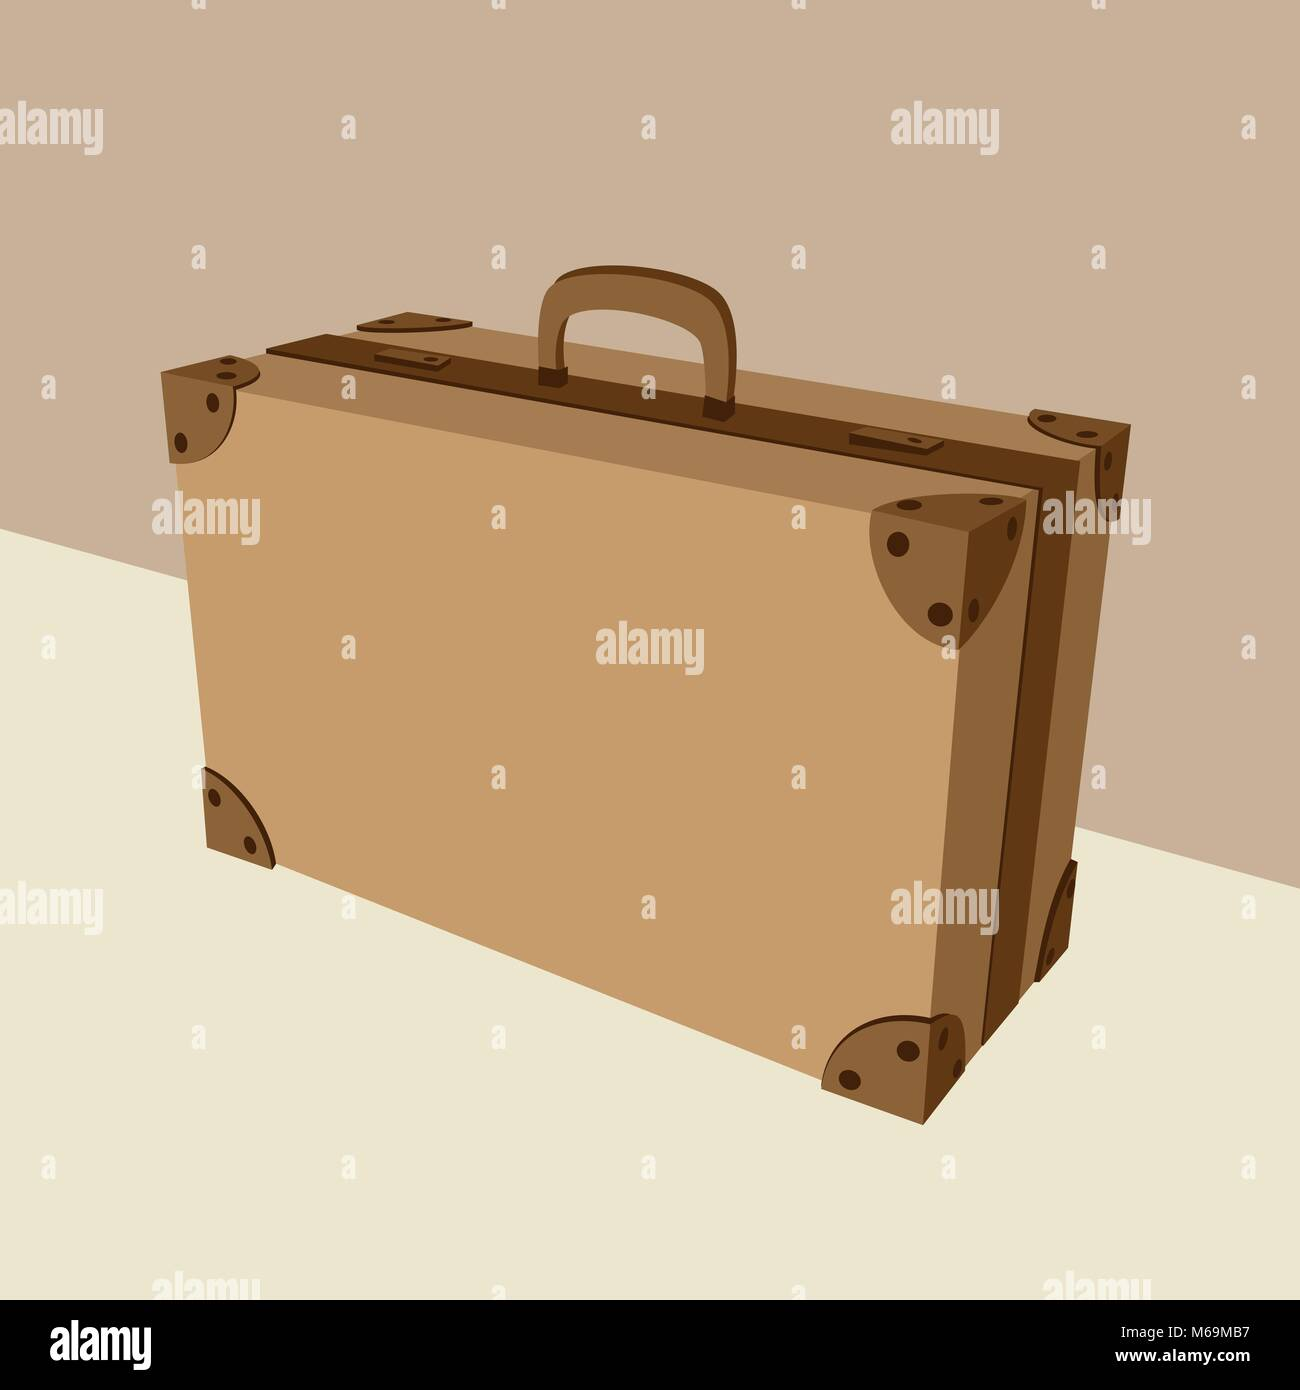 Ancienne valise fiable et robuste Photo Stock